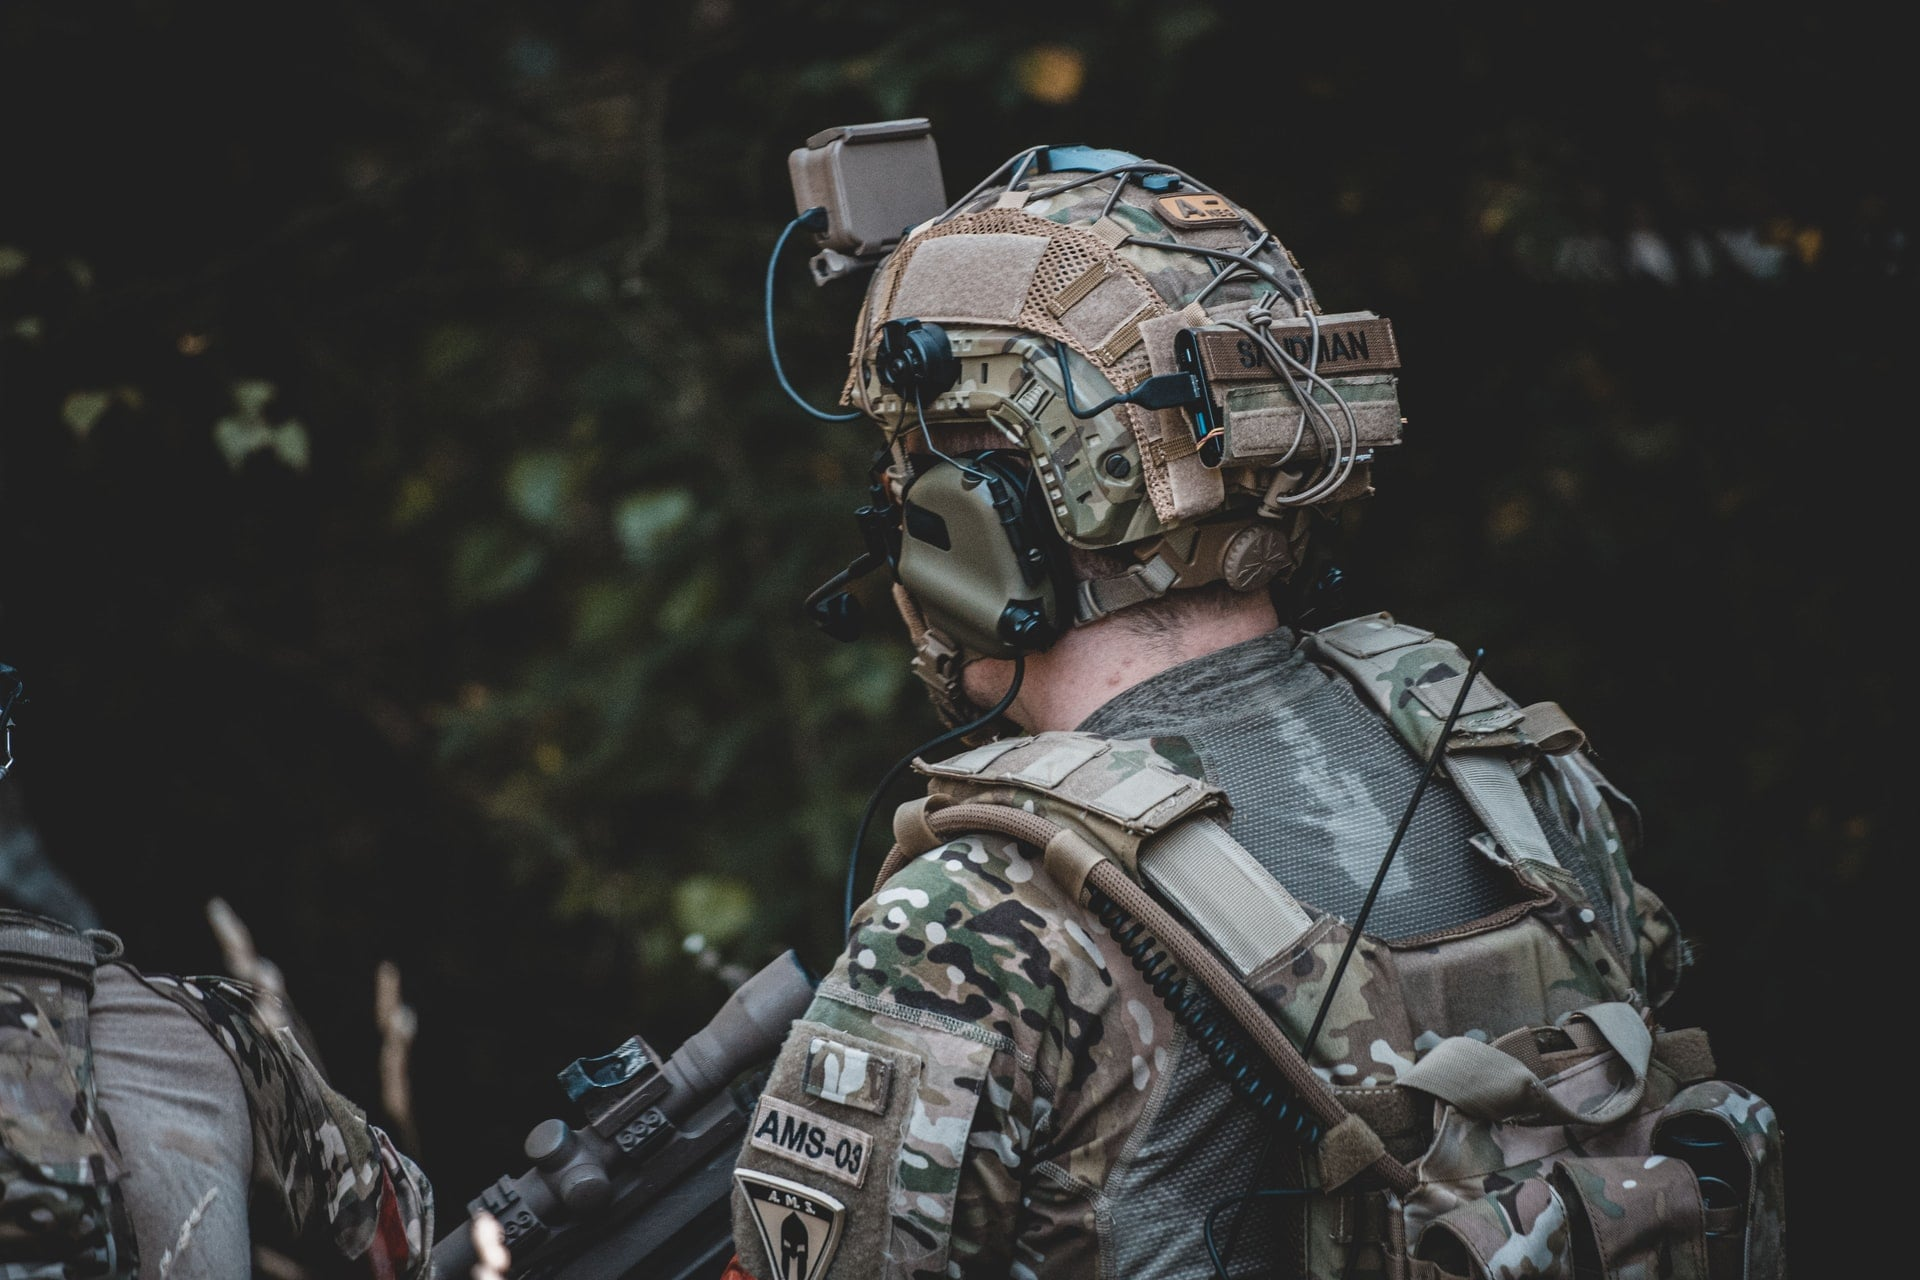 How to choose the proper body armor